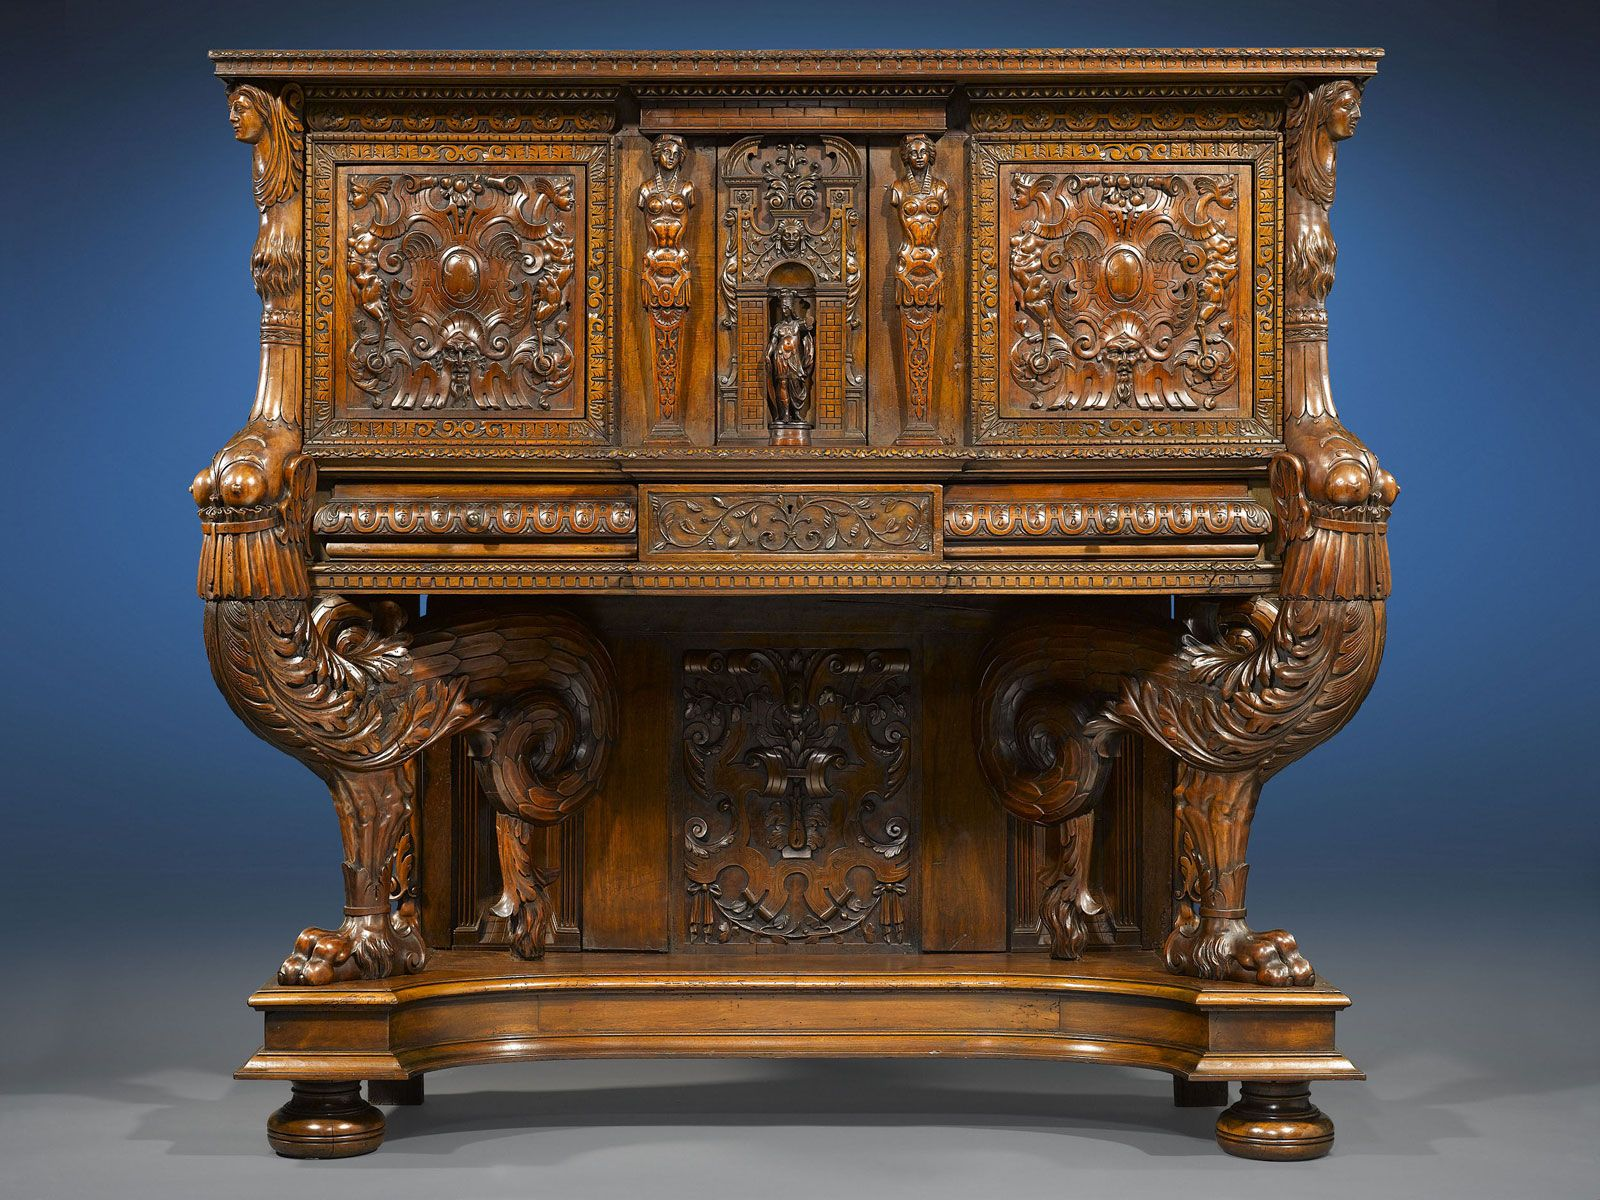 1000 images about renaissance period on pinterest renaissance - Renaissance Furniture Google Search